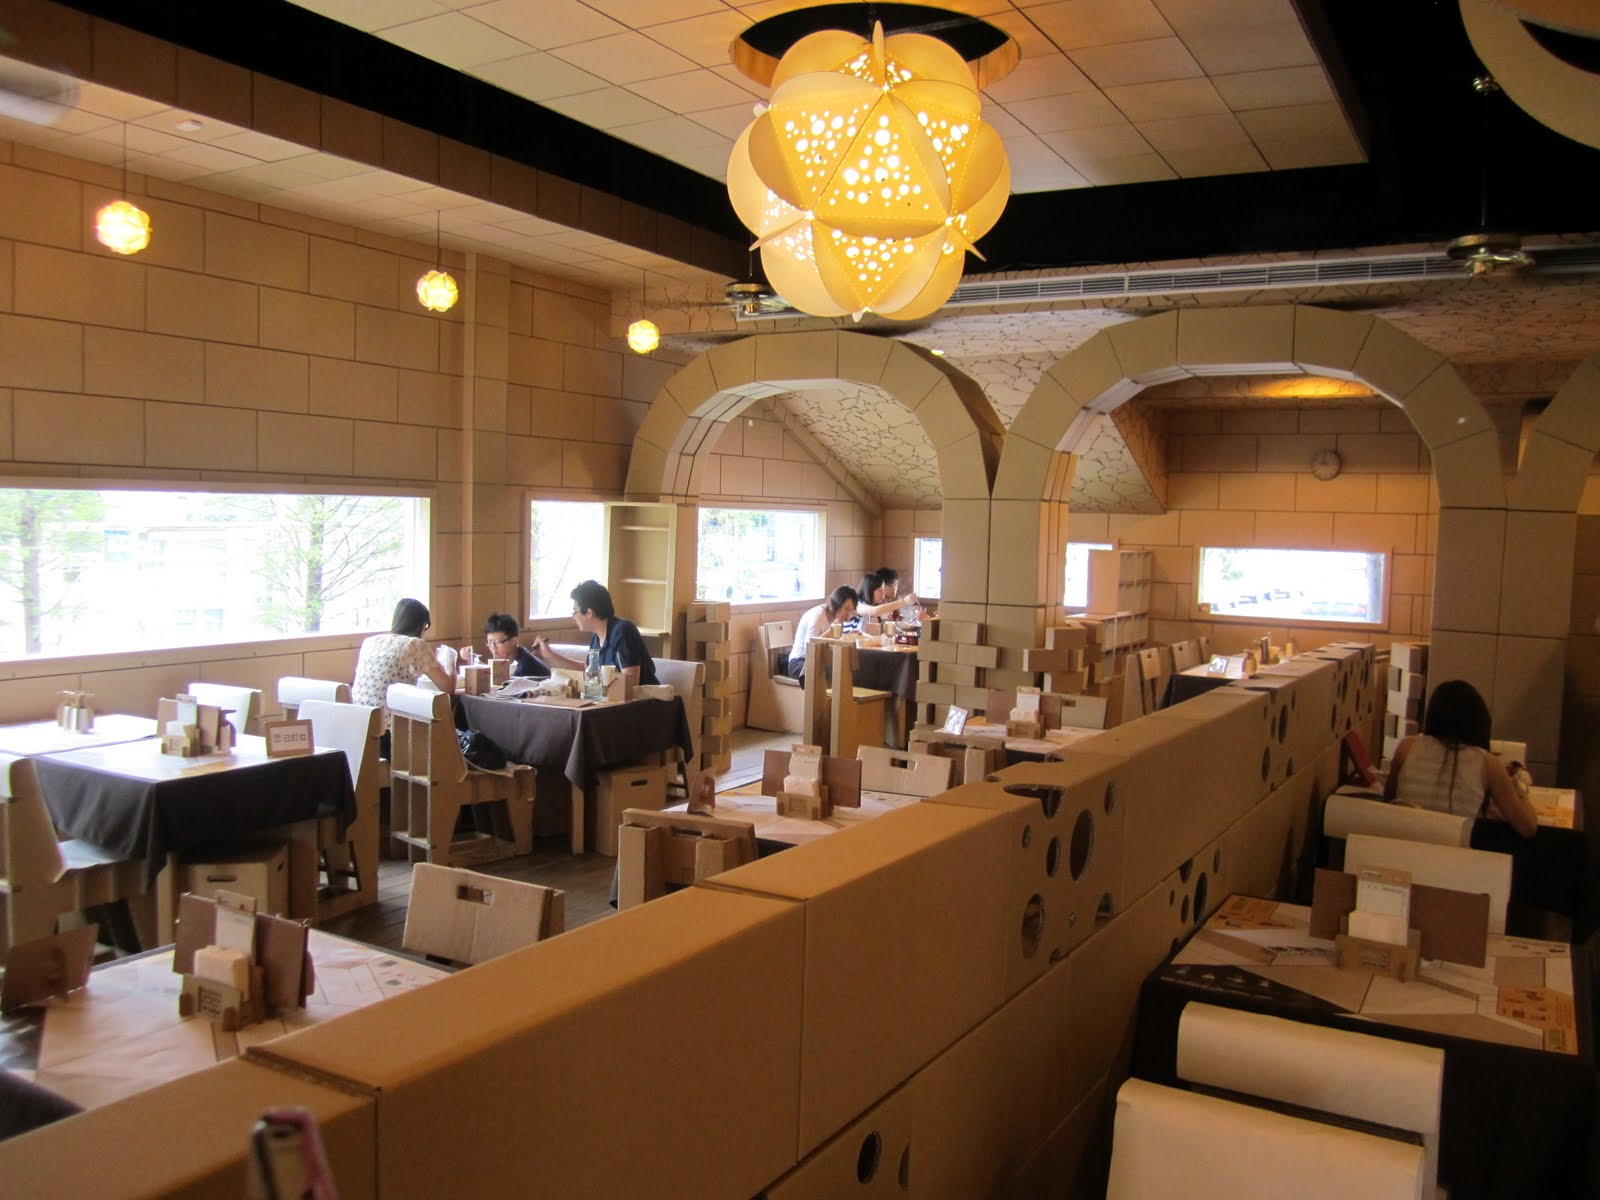 carton-king-restaurant-taiwan-03